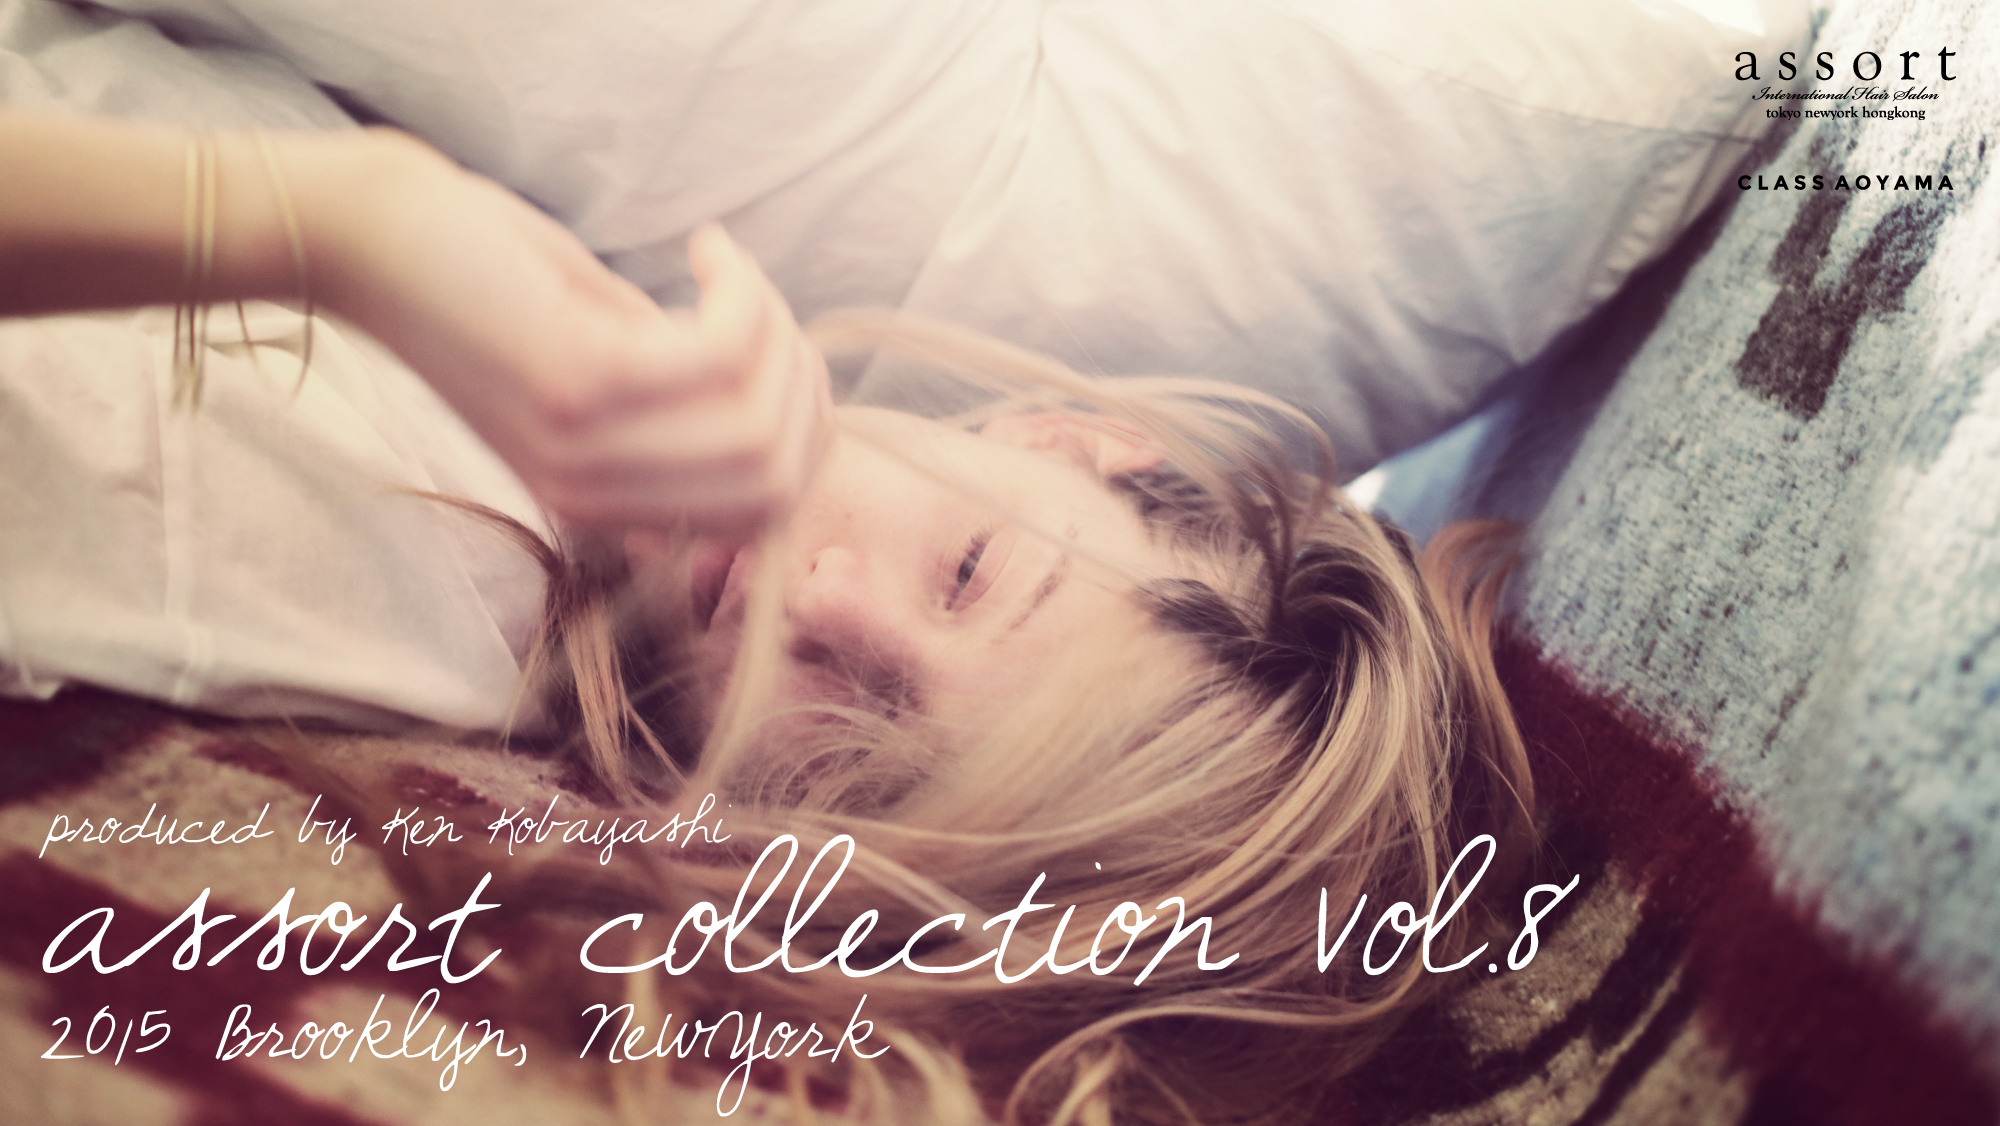 assortcollectionvol8banner3